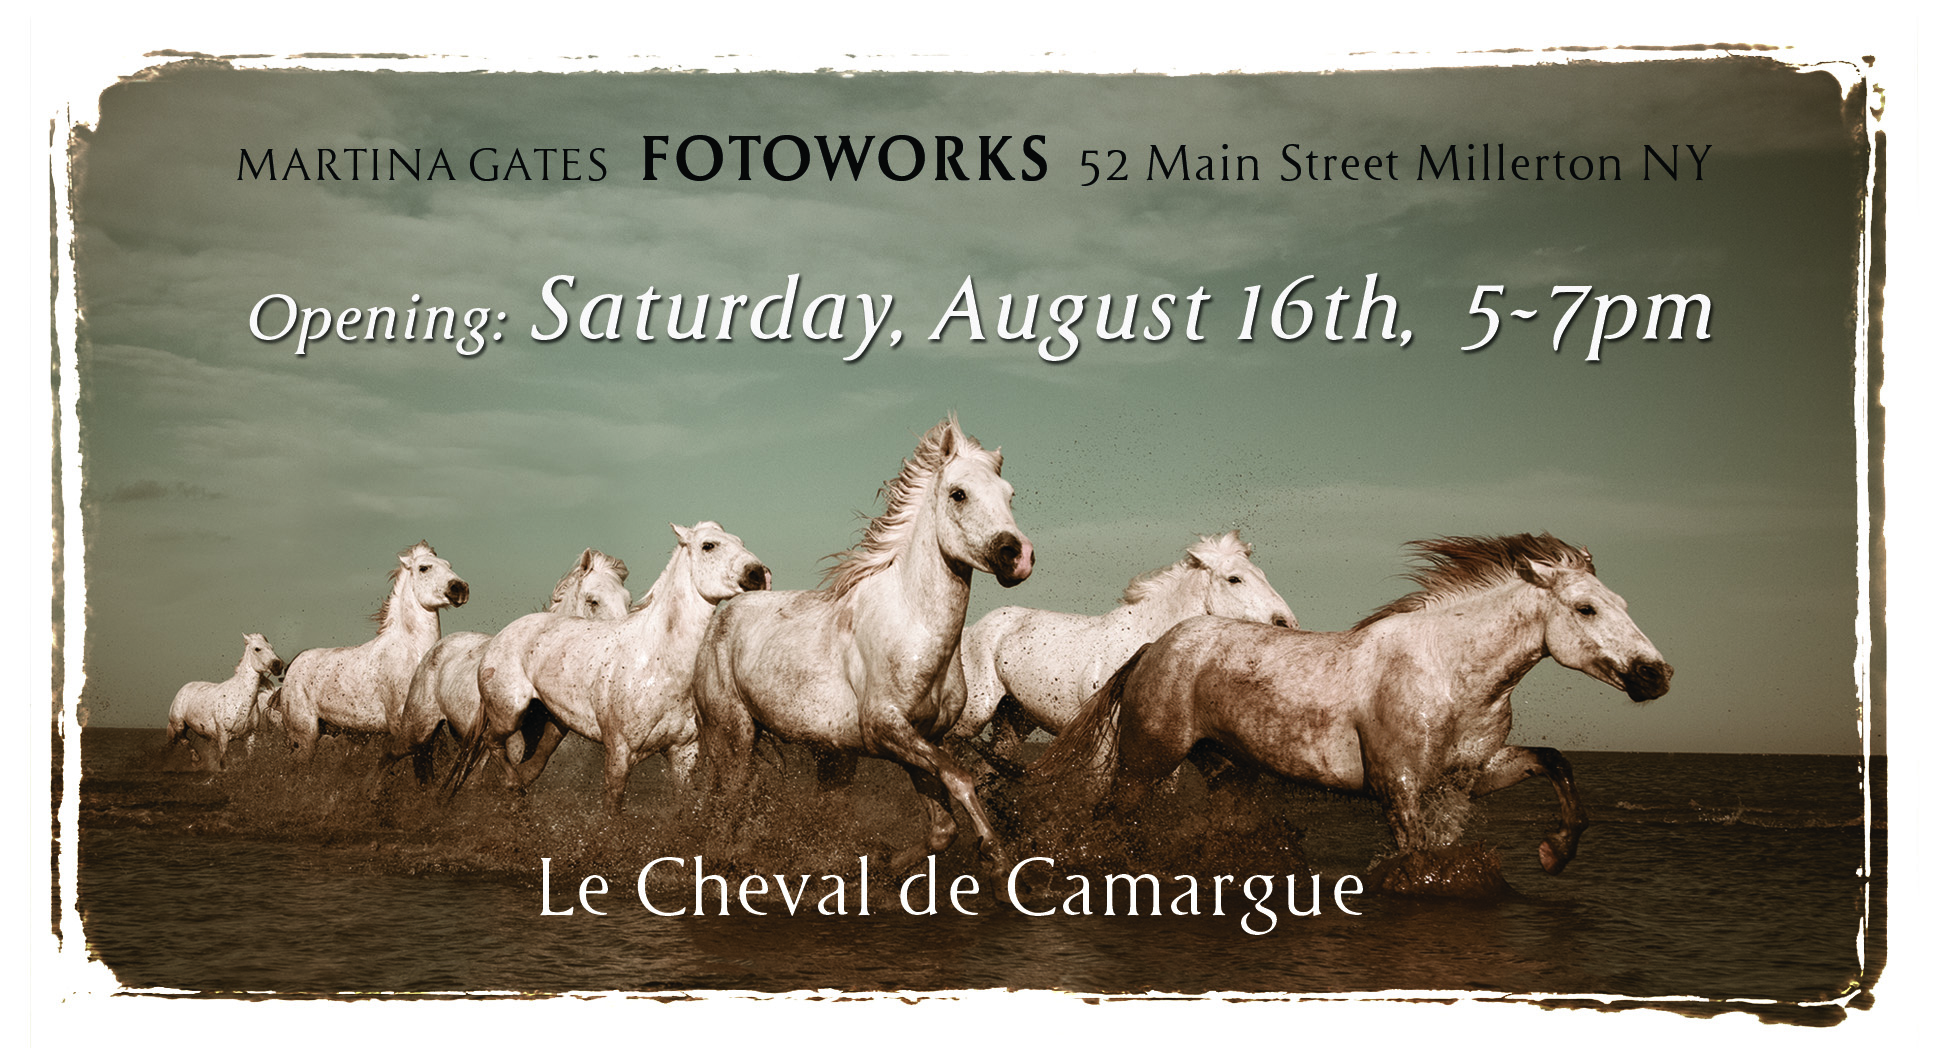 The first show is a collection of images of the horses of the Camargue. All images are printed as a limited edition of 5 and are hand signed and numbered. Each image comes with a certificate of authenticity.